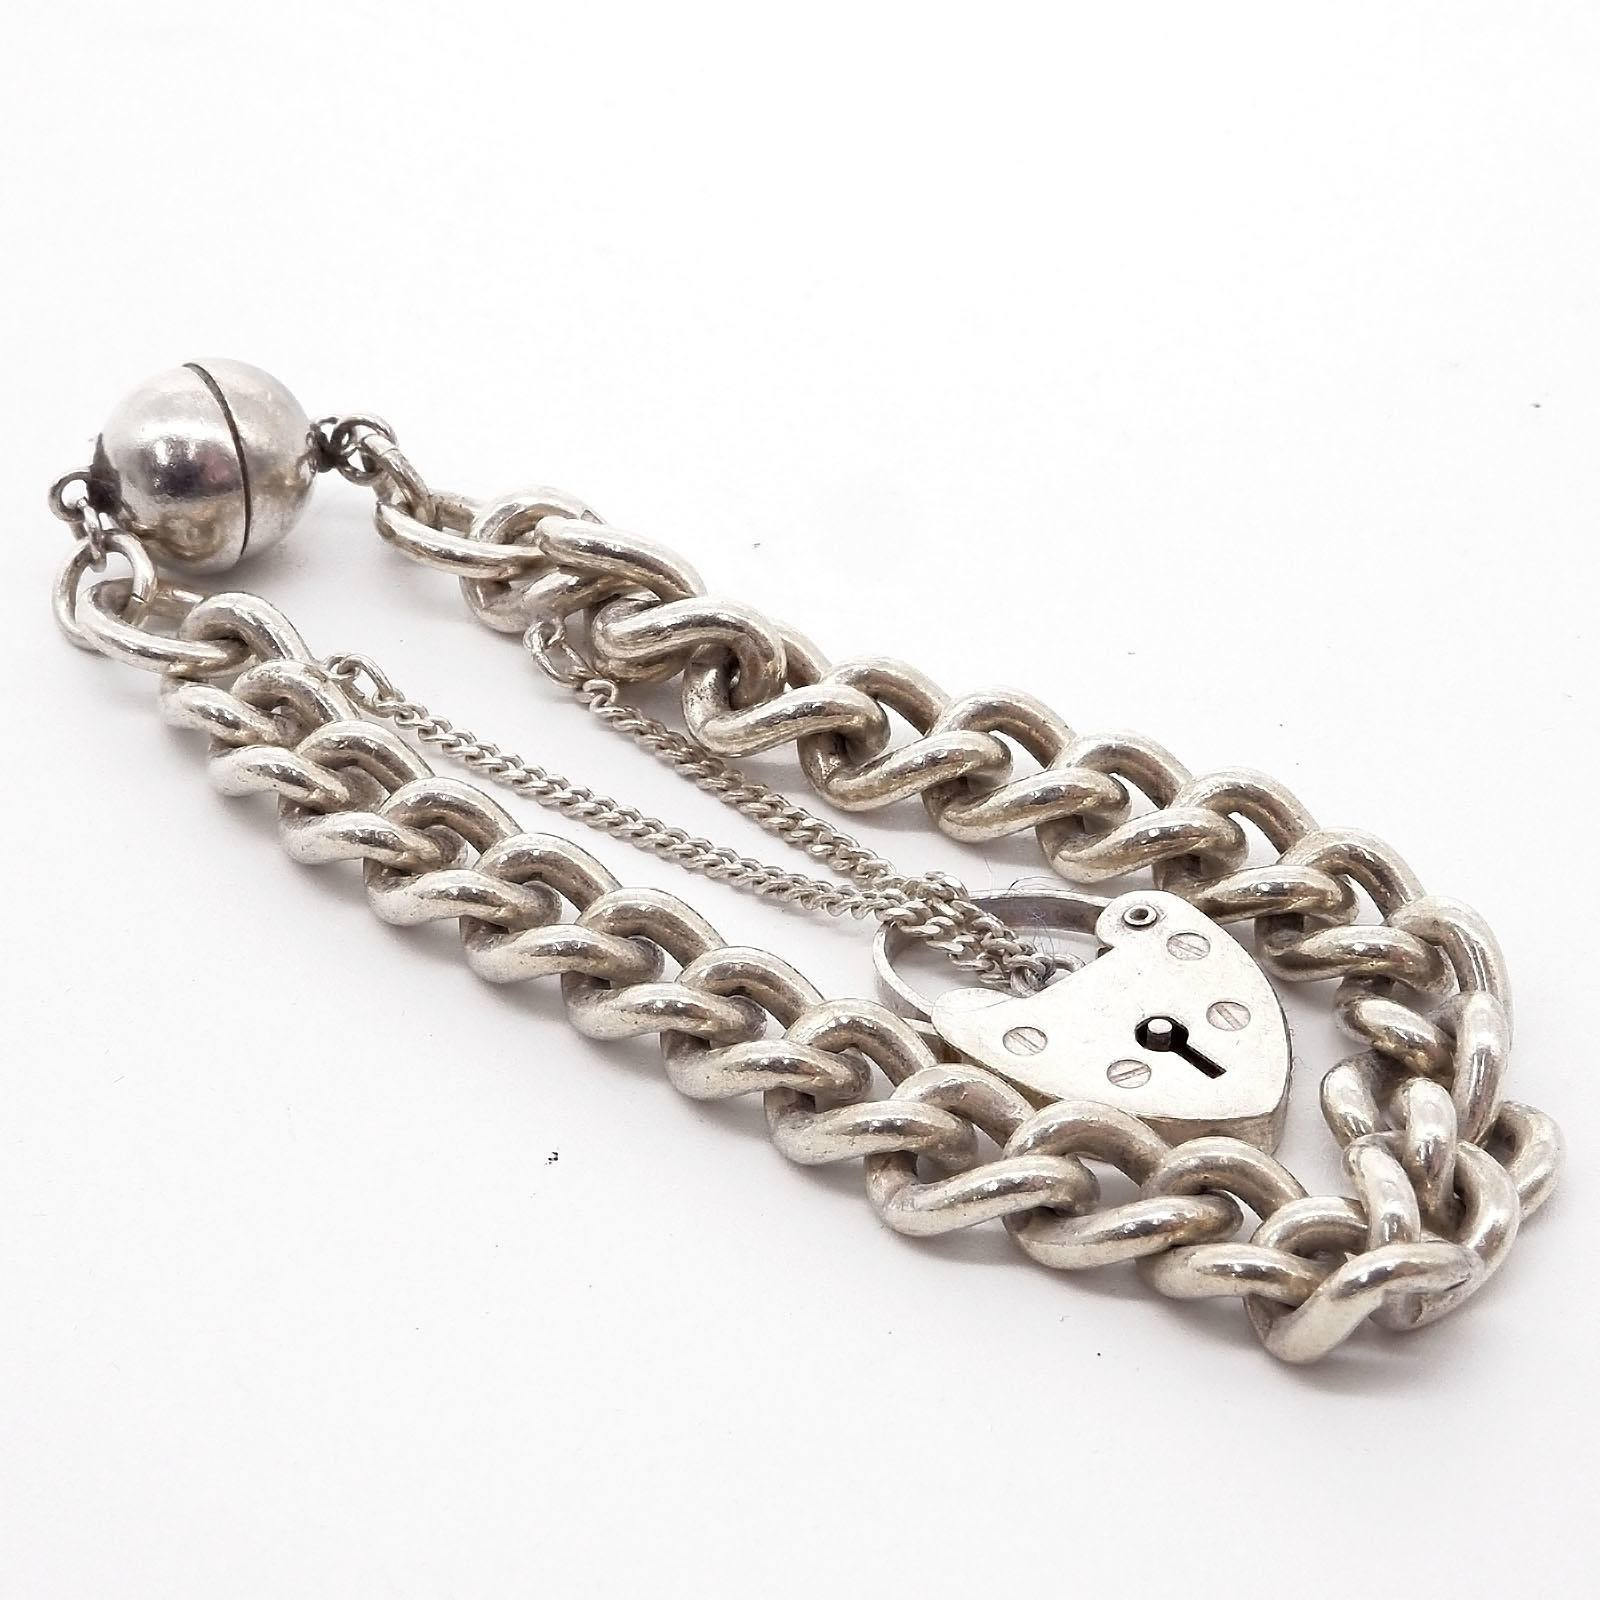 'Sterling Silver Curb Link Bracelet with Heart Lock'